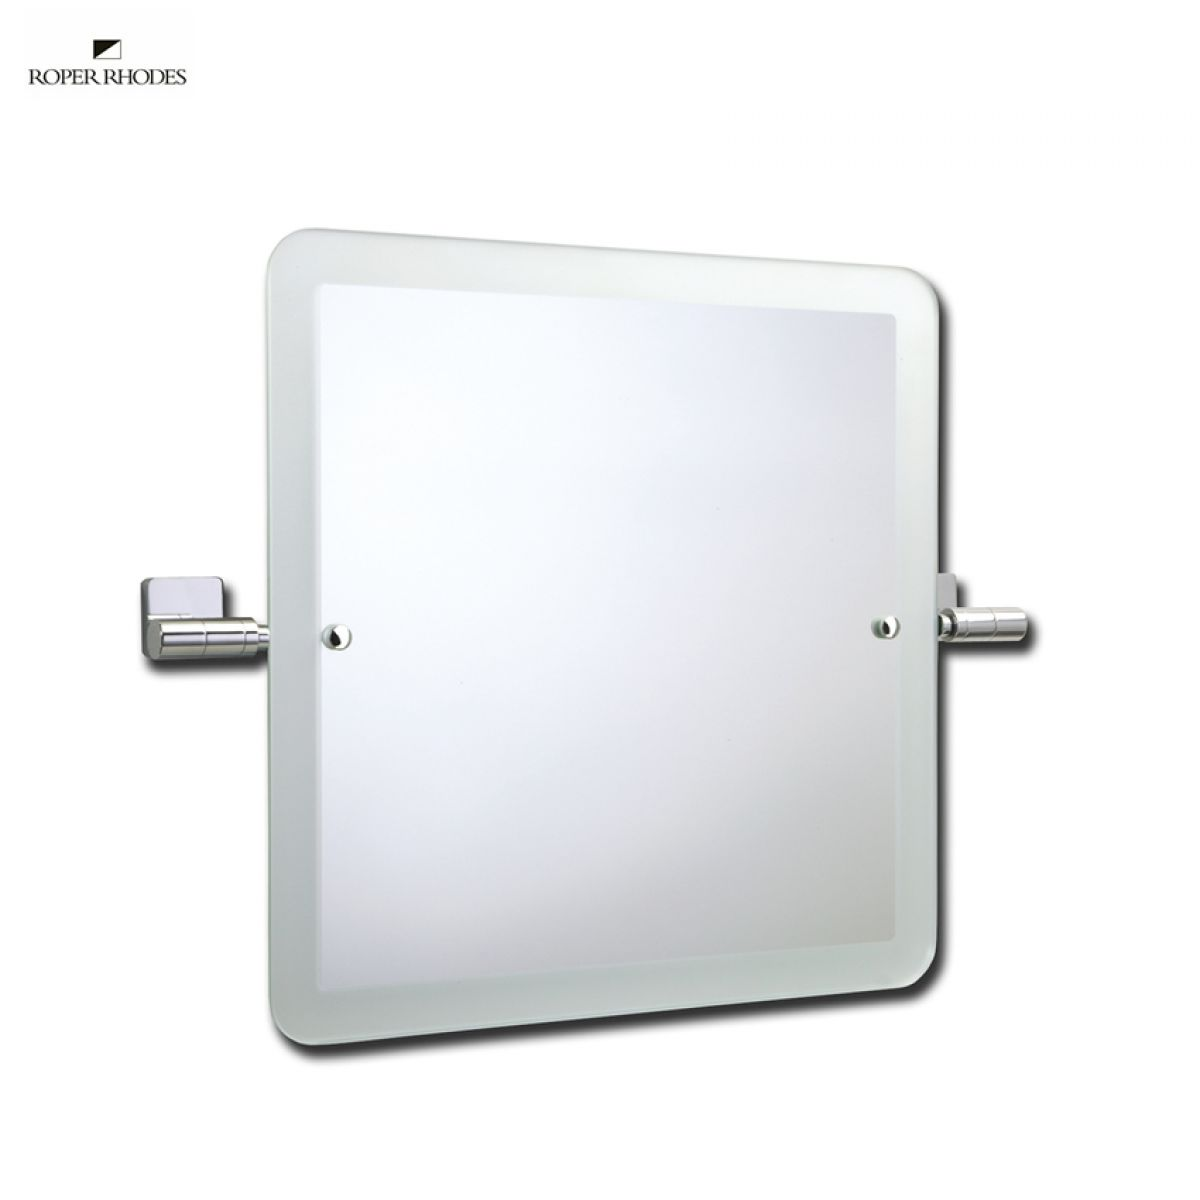 bathroom wall mounted mirrors roper glide wall mounted bathroom mirror ukbathrooms 17143 | 31346